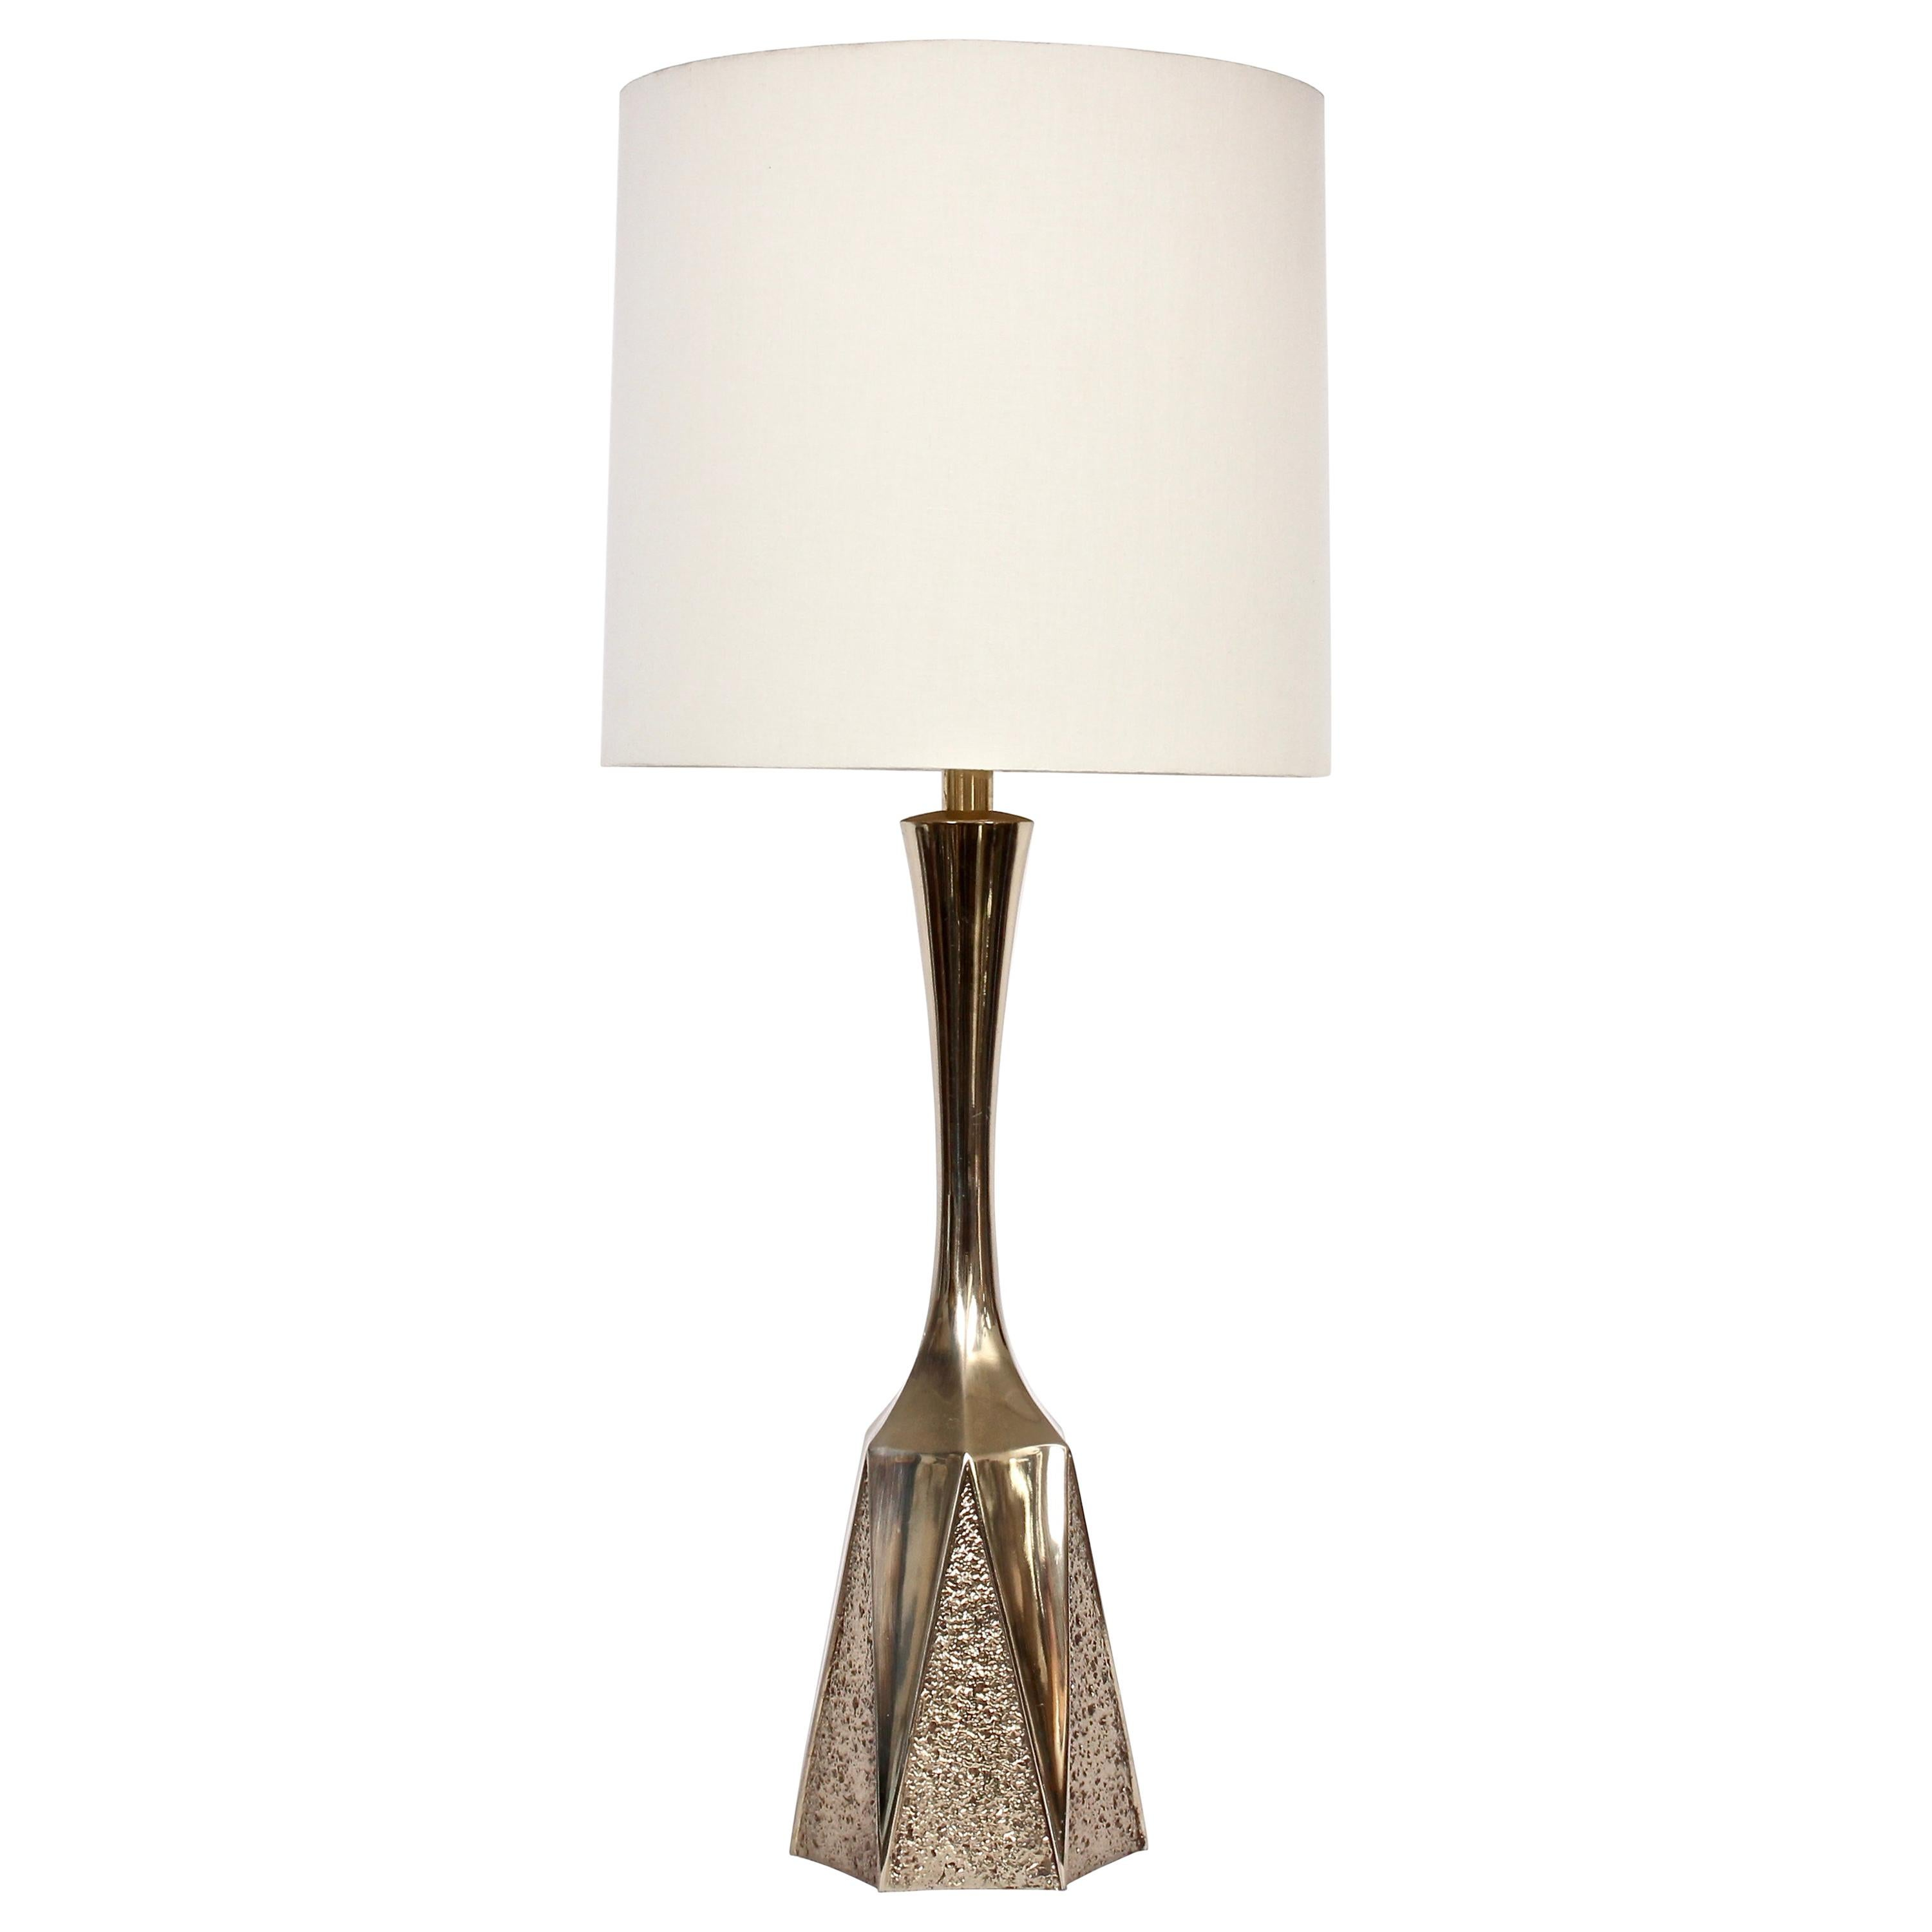 Monumental Barr & Weiss for Laurel Lamp Co. Brutalist Brass Table Lamp